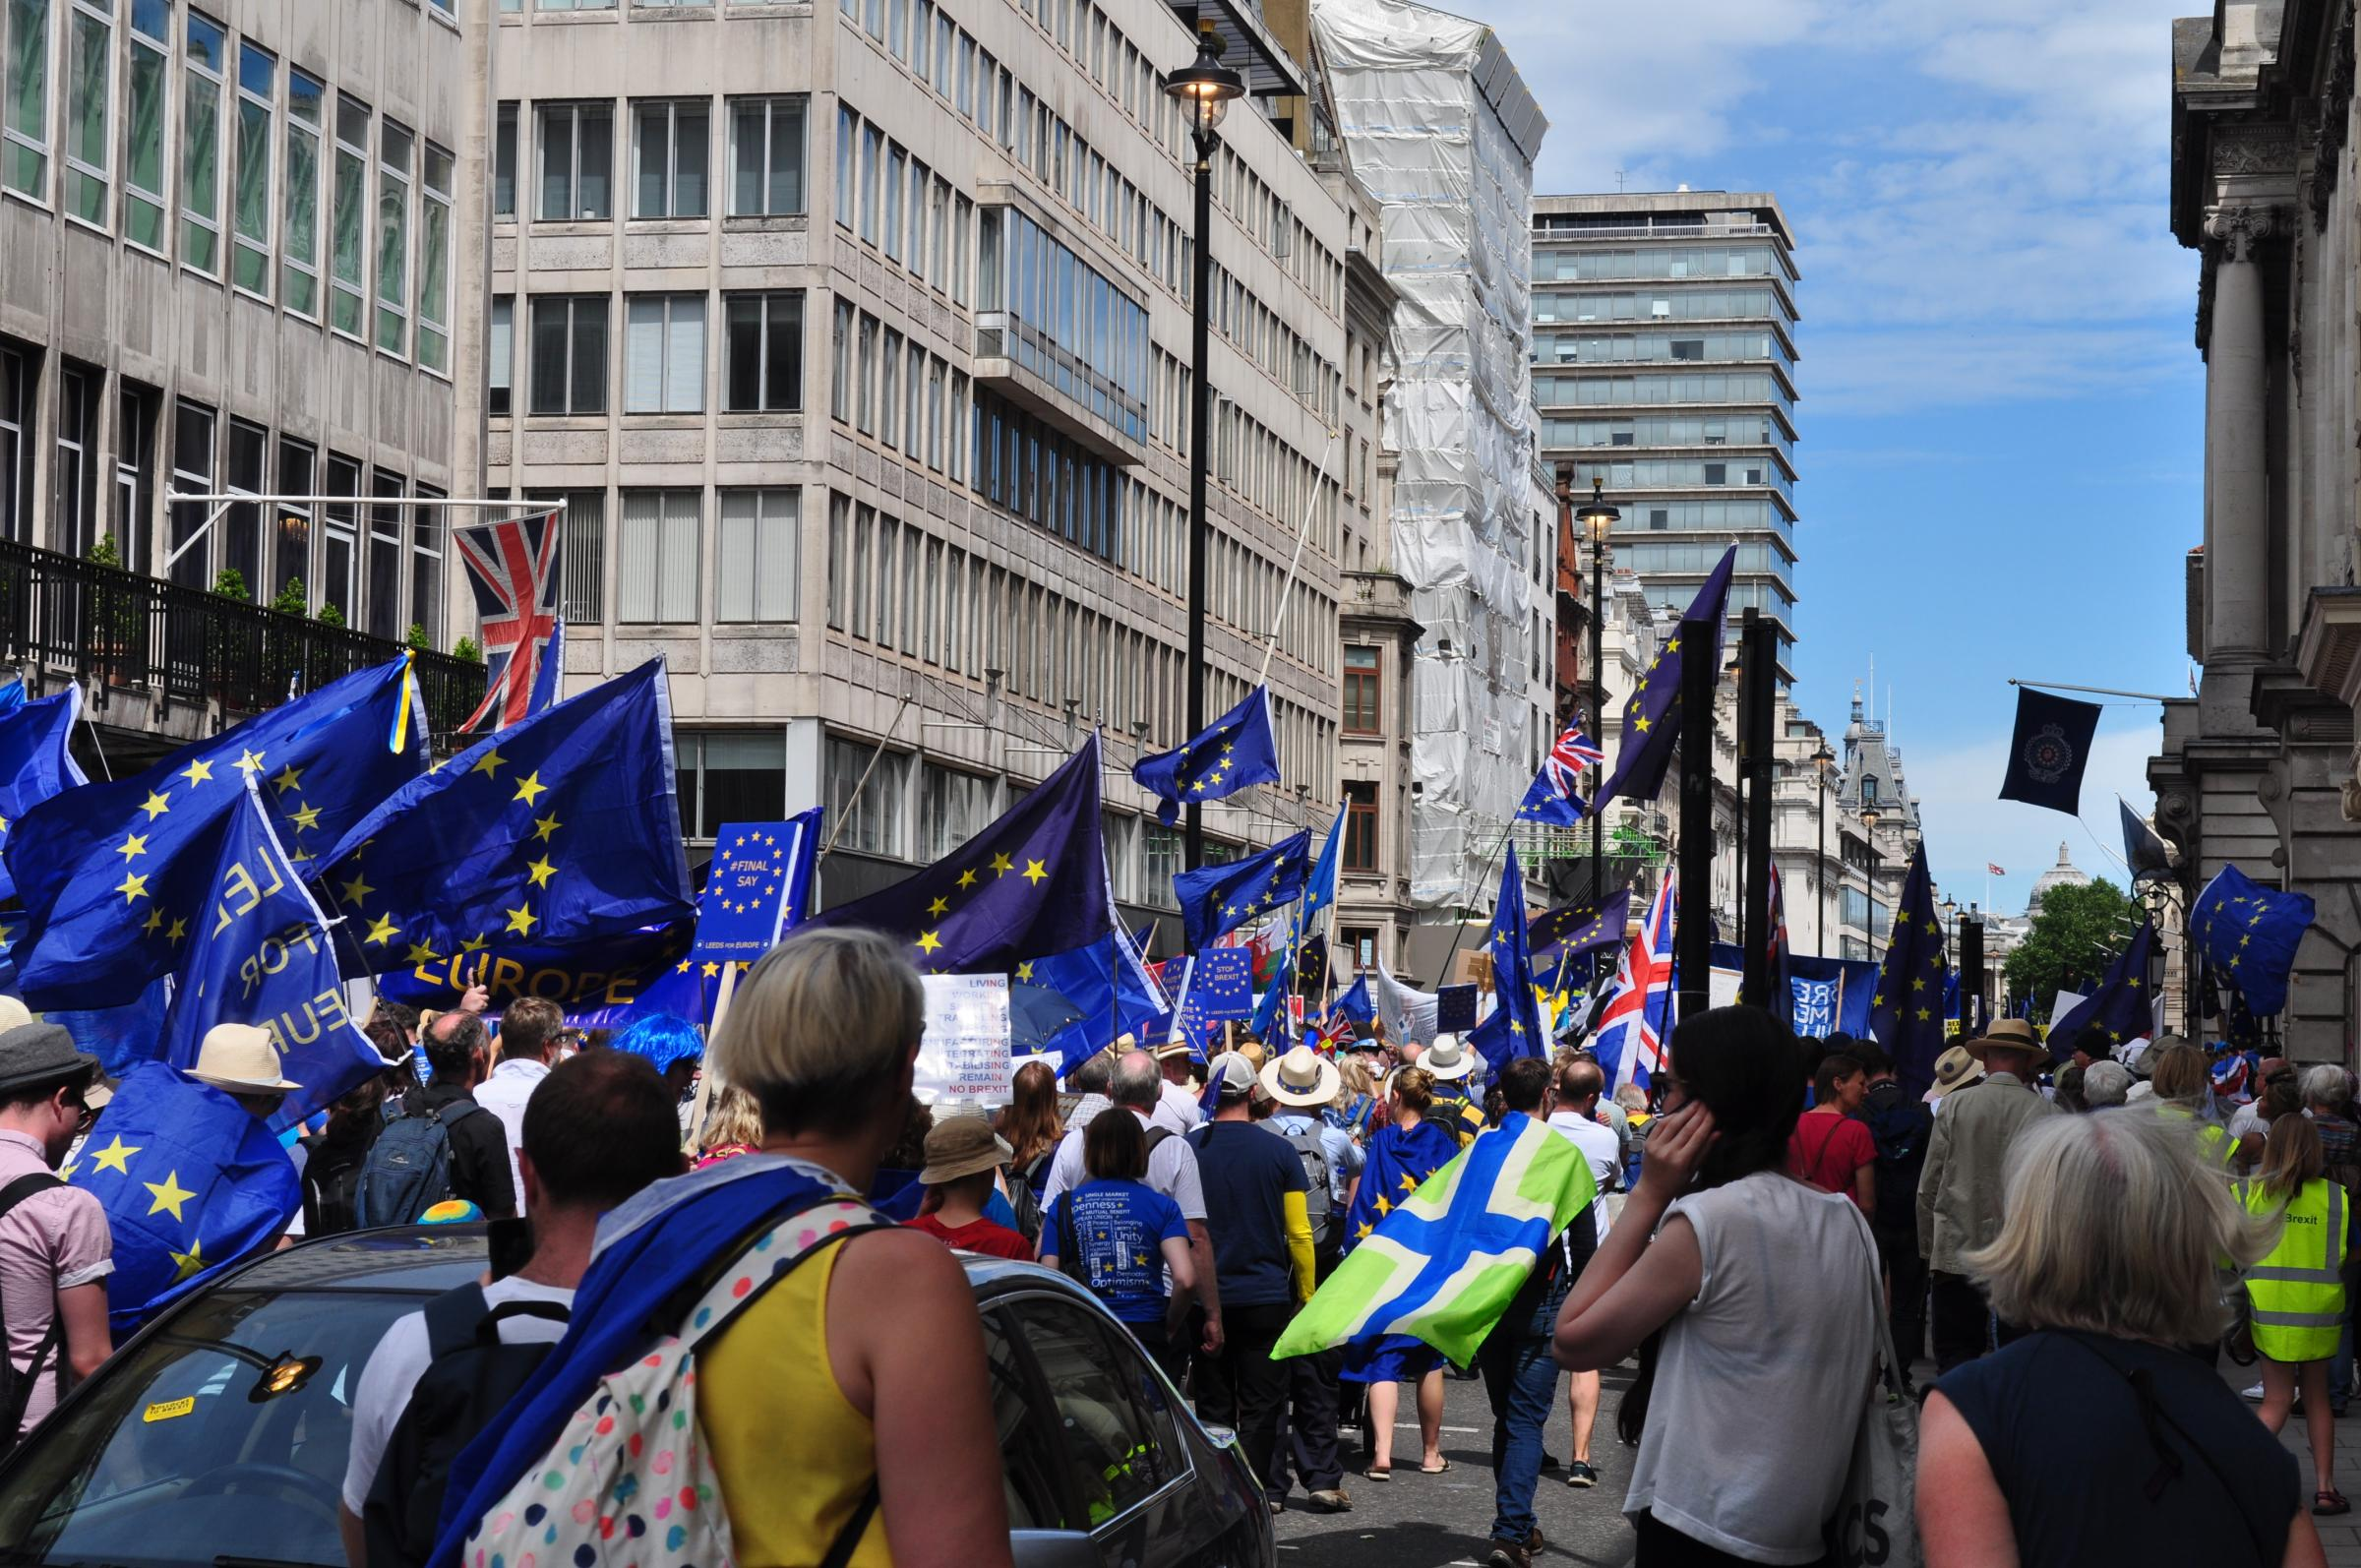 Activists grom a pro-EU Gloucestershire group on the People's Vote march earlier this summer